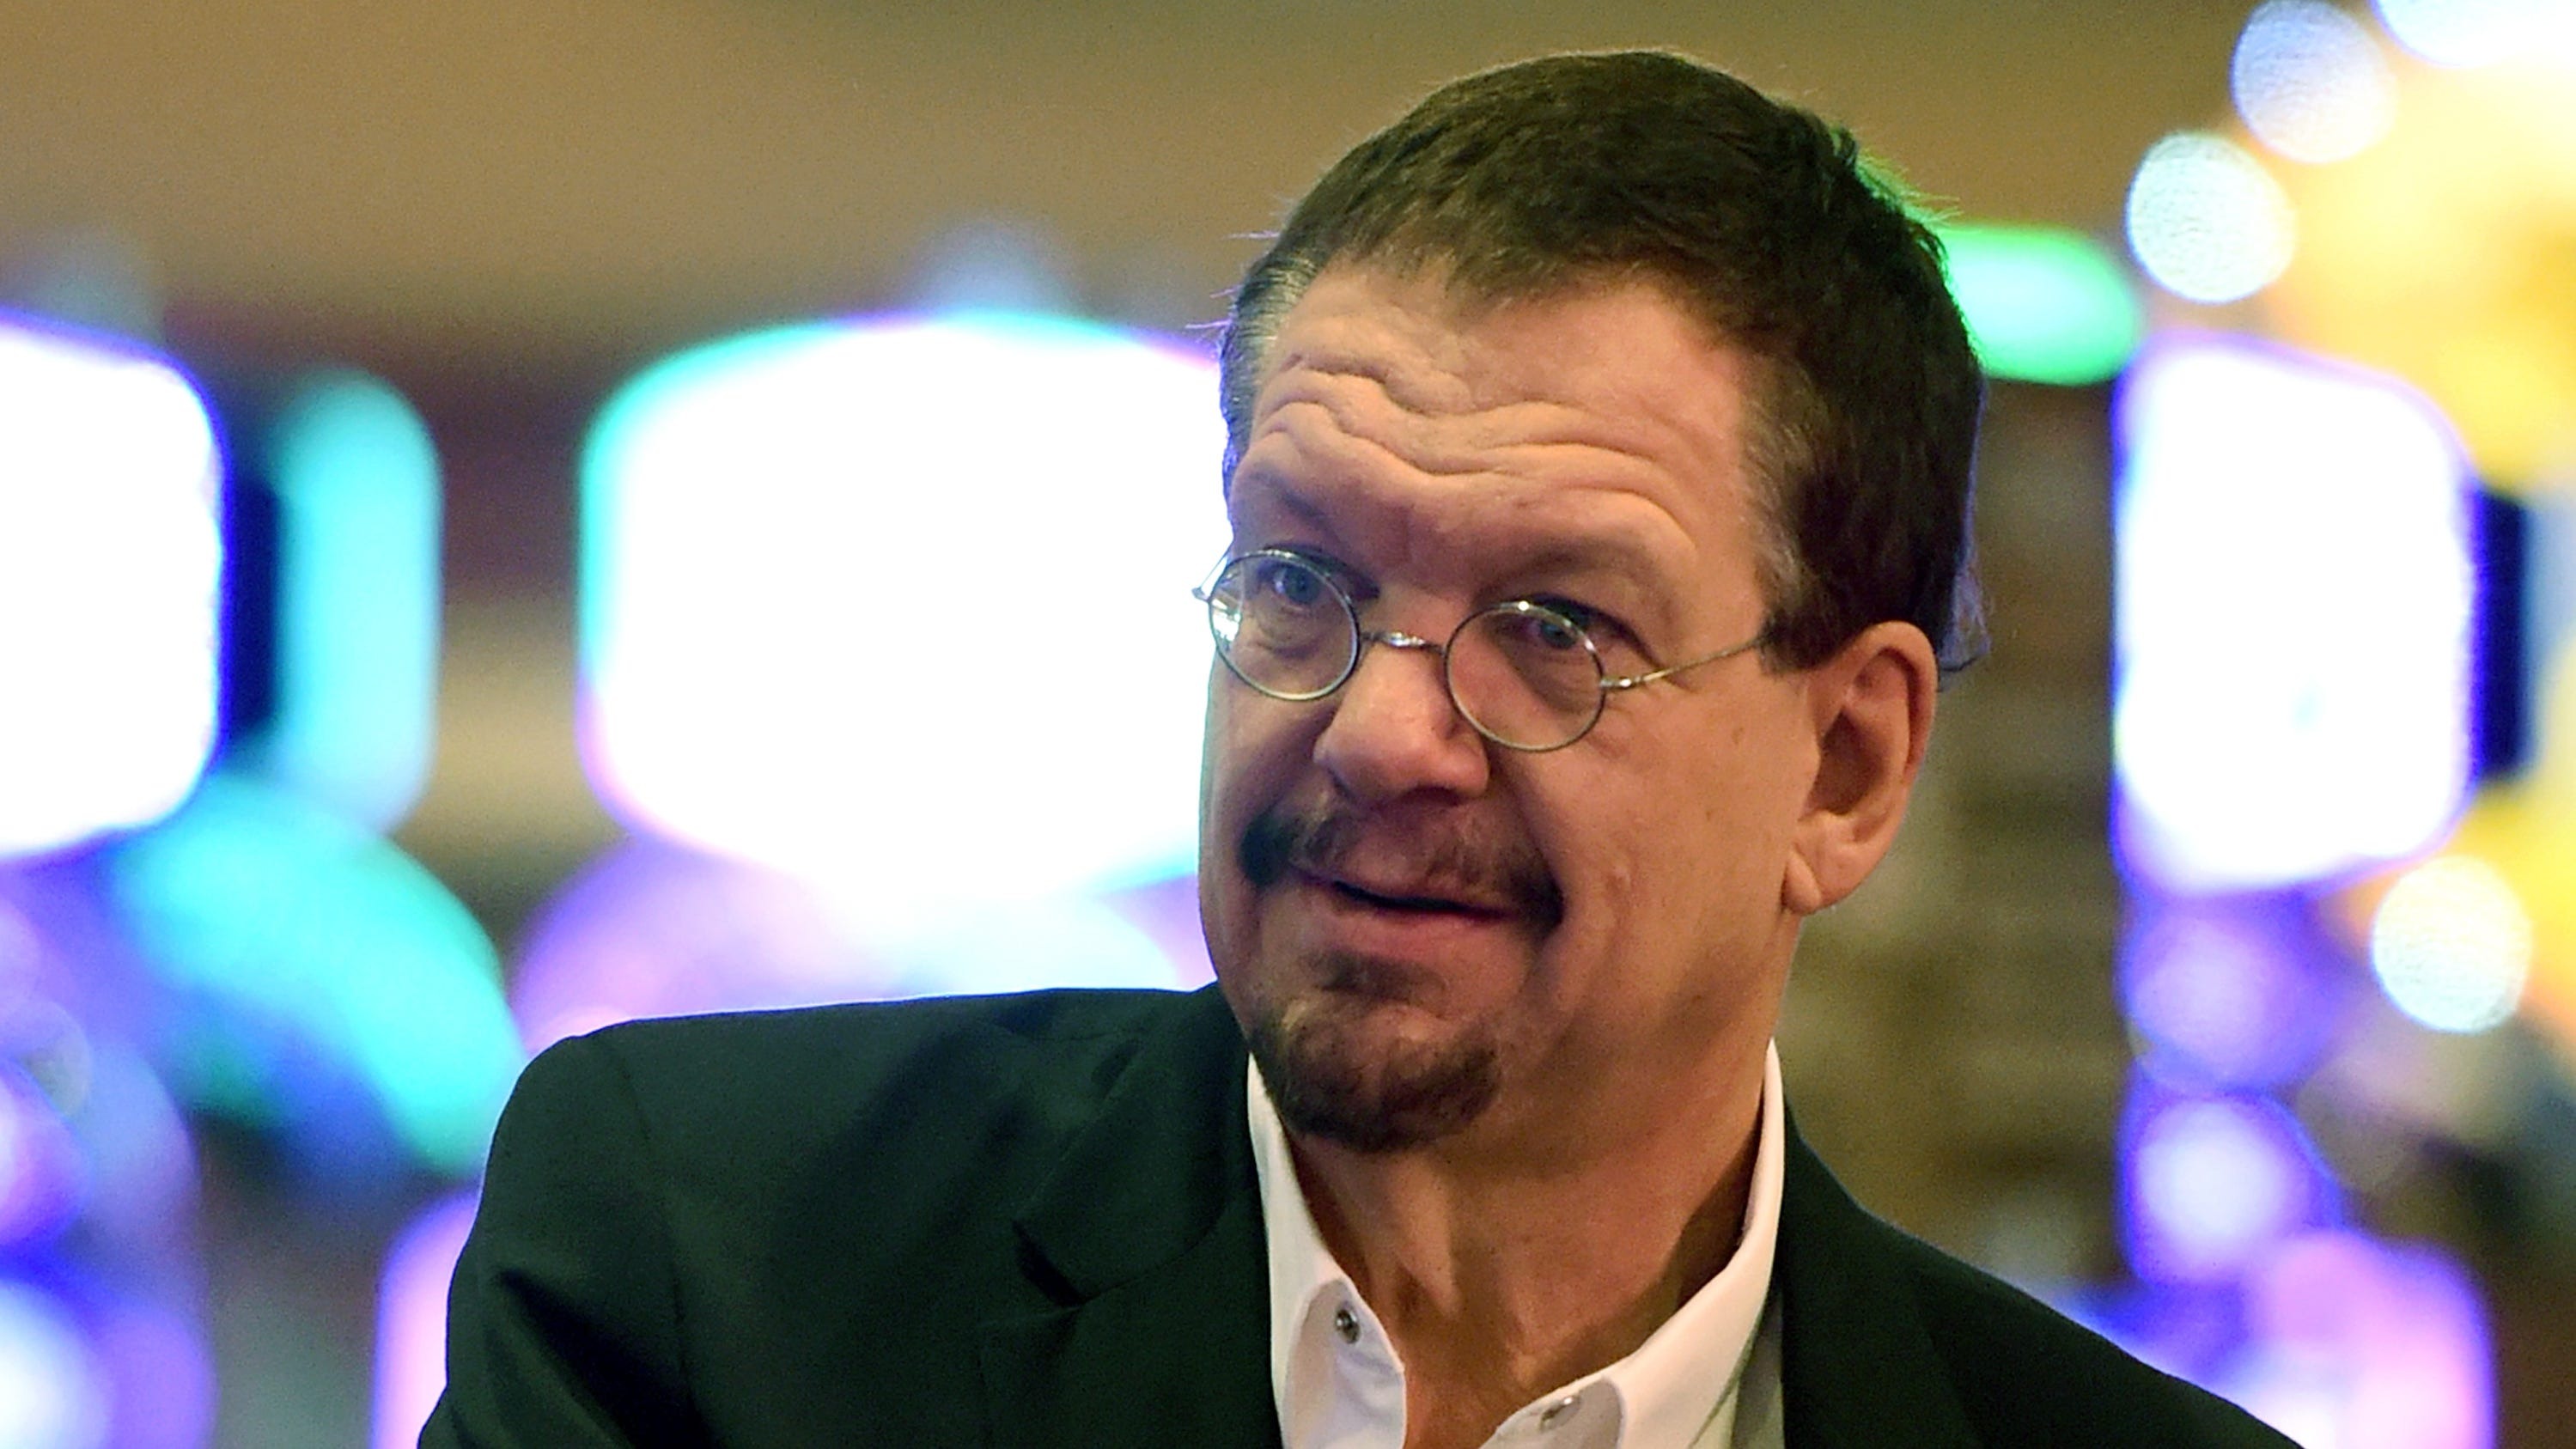 Penn Jillette says he knows Trump tapes exist, because 'I was in the room'